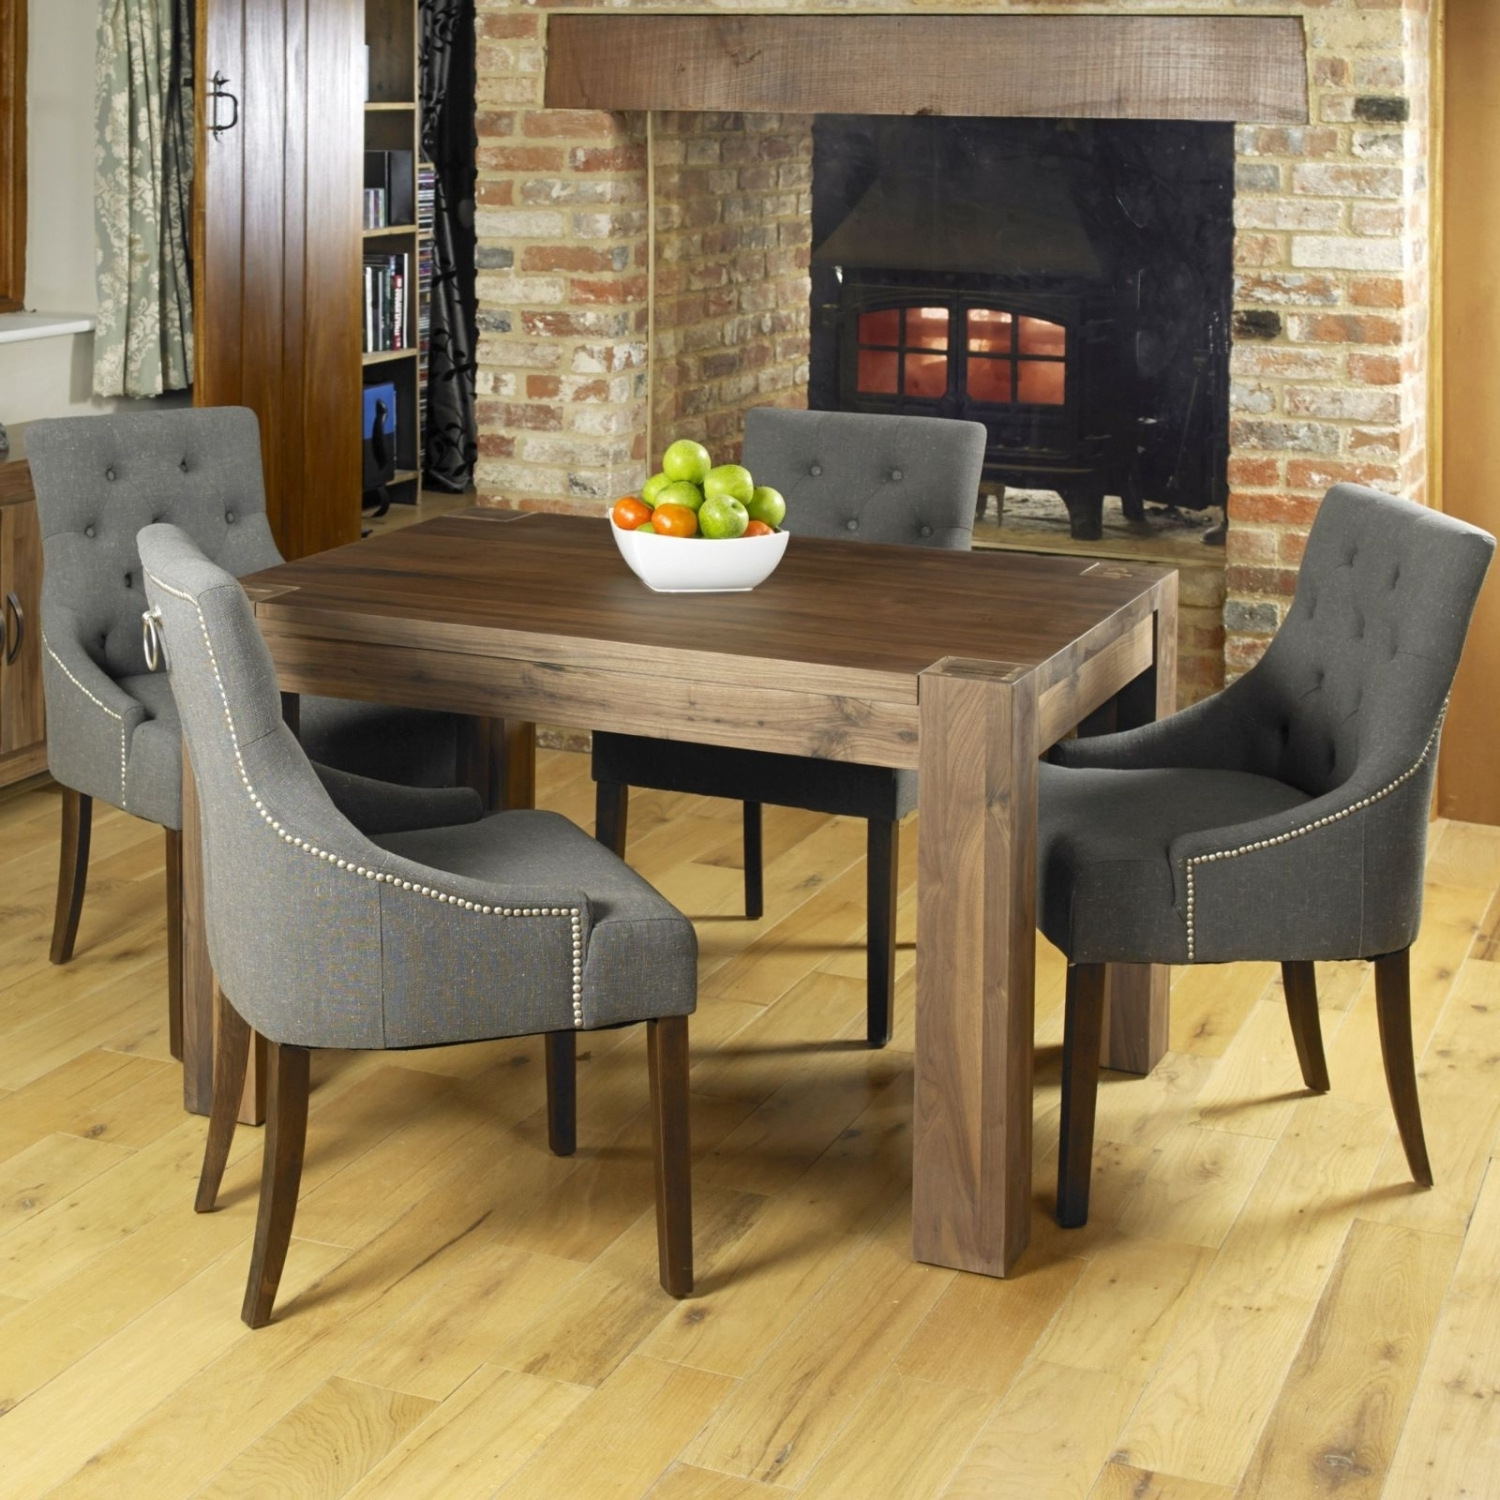 Dark Wooden Dining Tables pertaining to Most Up-to-Date Strathmore Walnut Dark Wood Modern Furniture Dining Table And Four